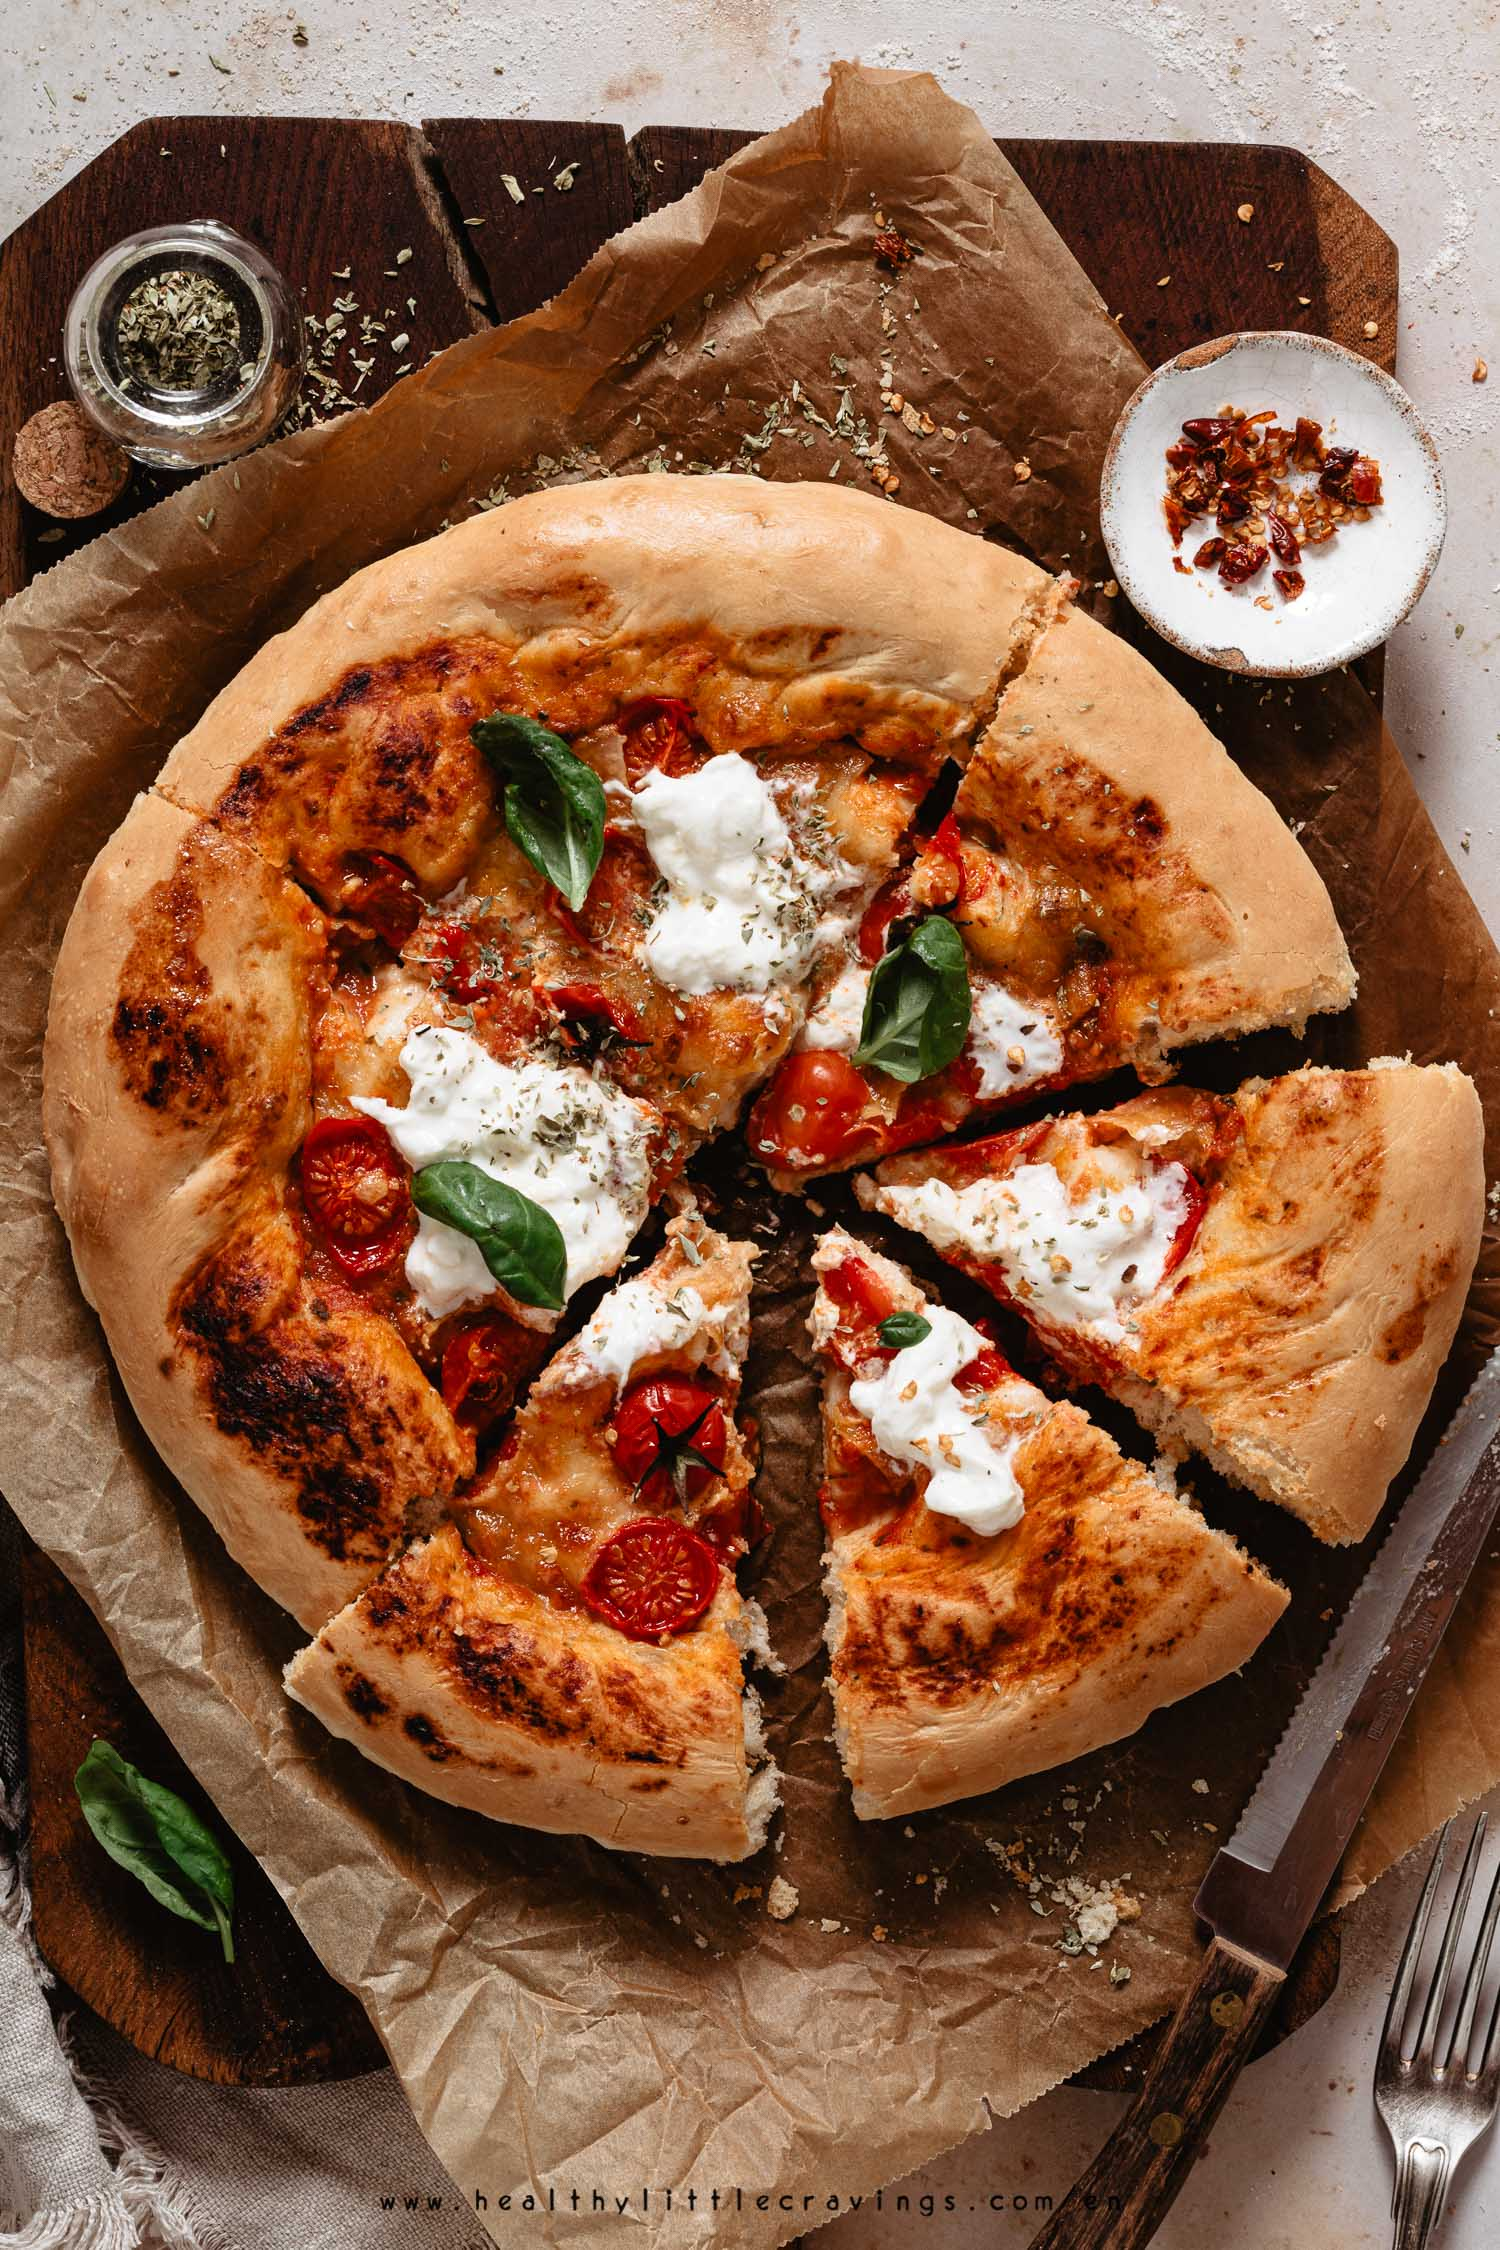 Easy homemade pizza dough recipe and pizza Margherita